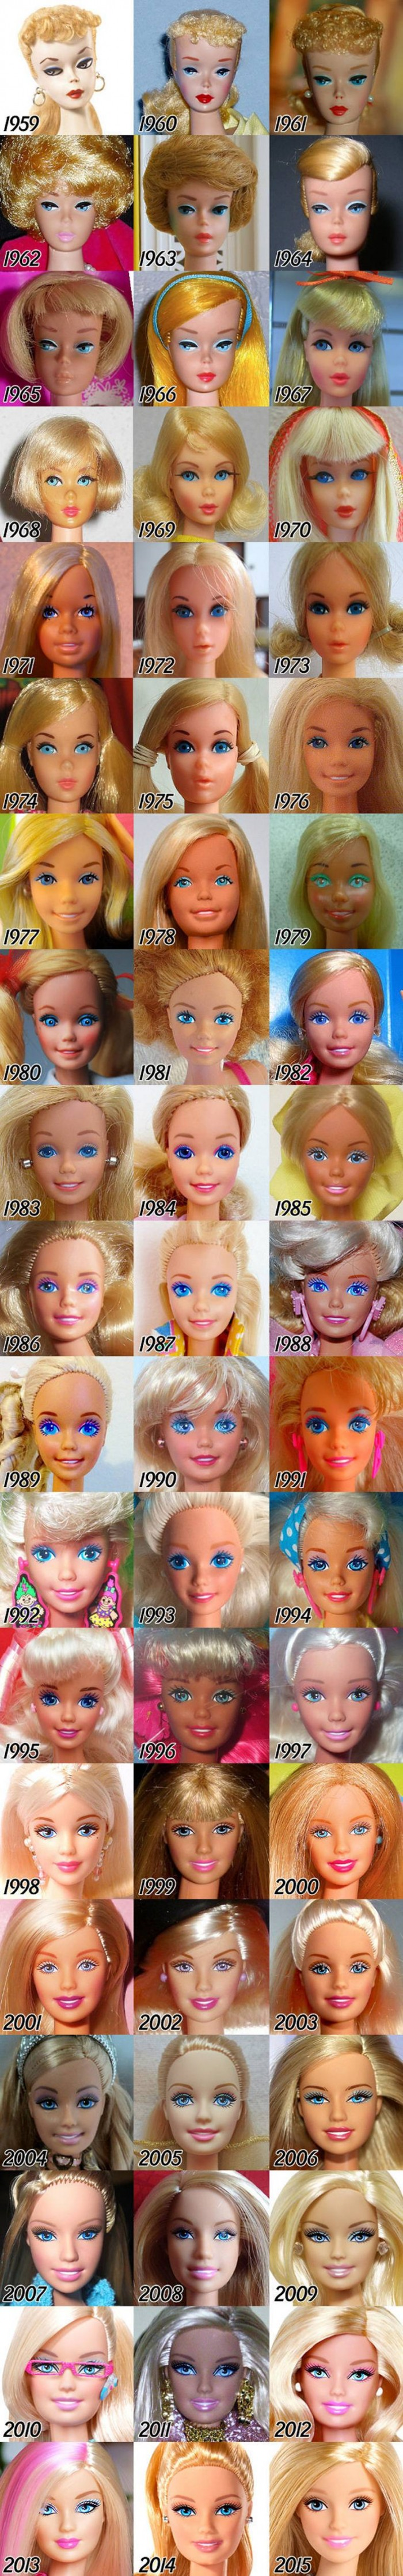 Barbie through the years.jpg